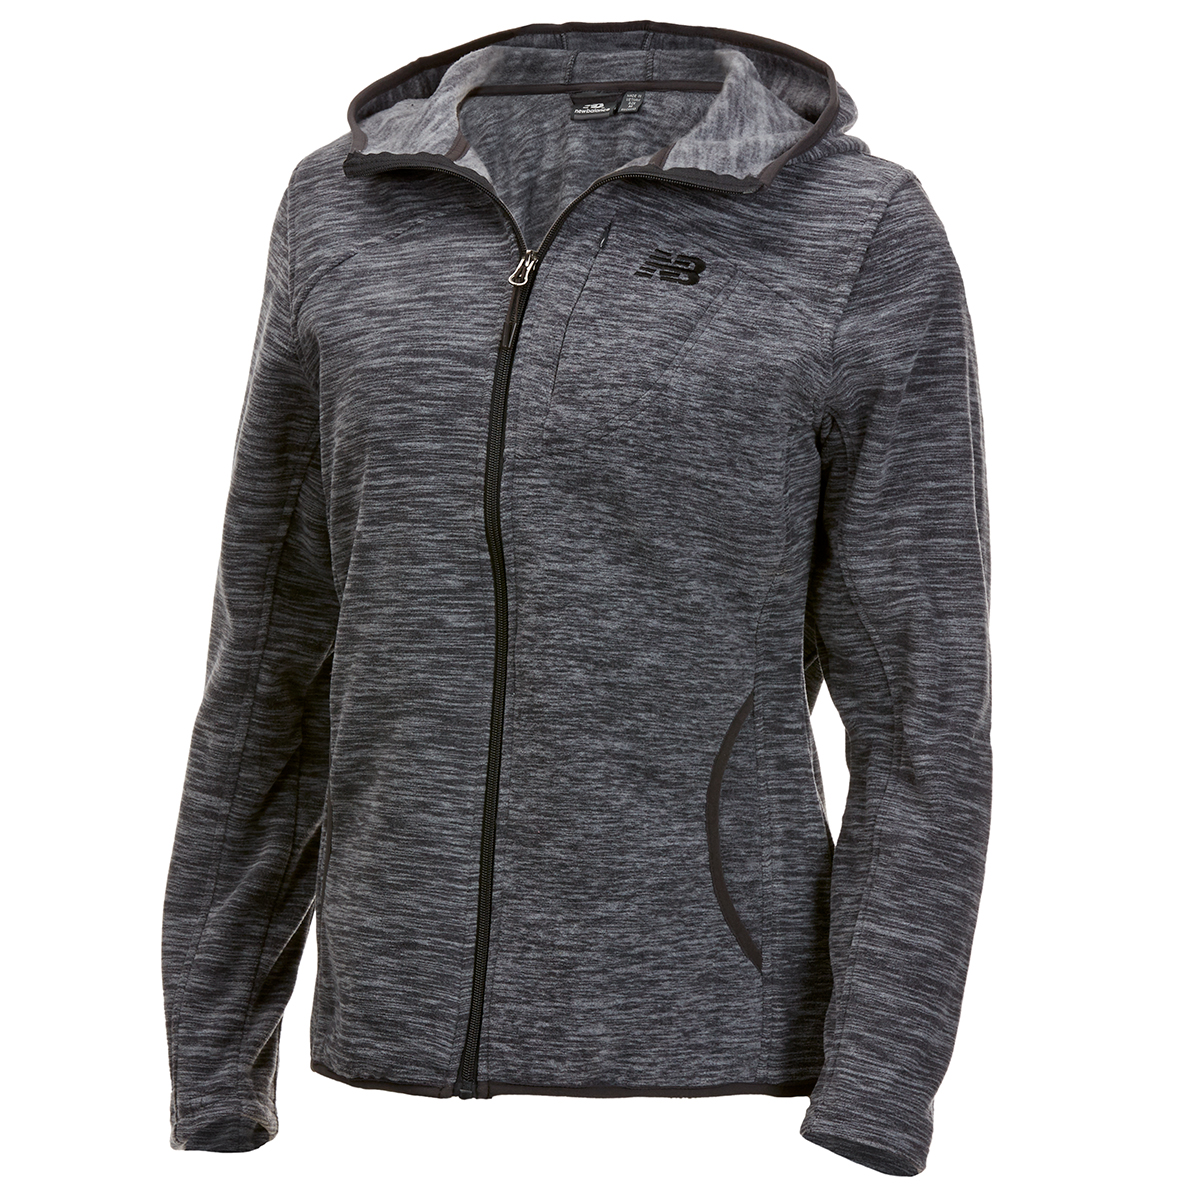 New Balance Women's Polar Fleece Space-Dye Full-Zip Hoodie - Black, L